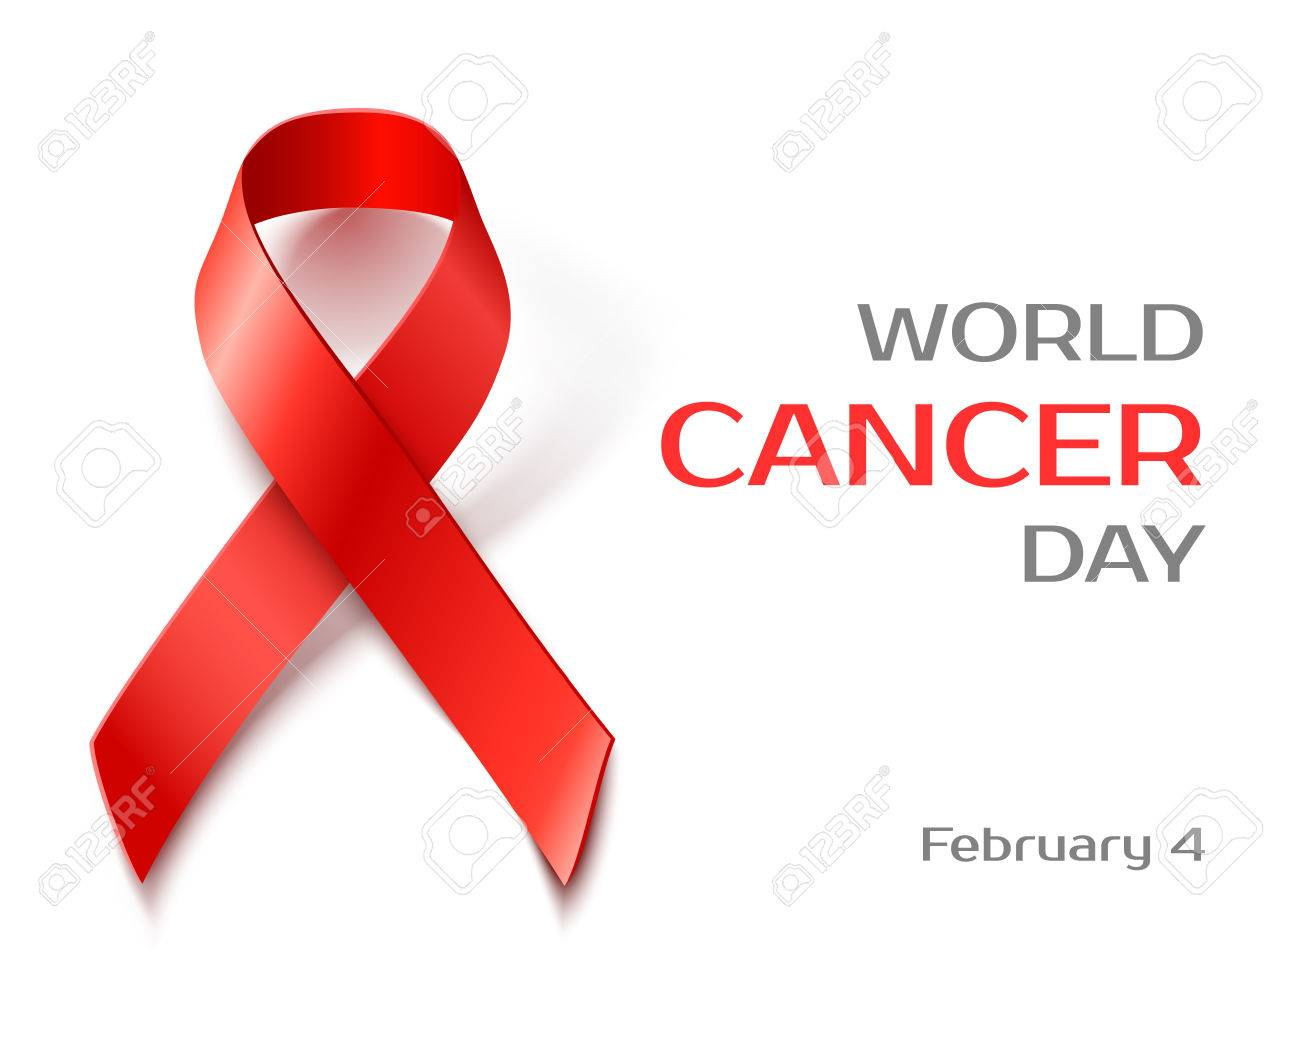 5dc4c94ed89 Awareness World Cancer Day background with red ribbon, vector illustration  Stock Vector - 50855477